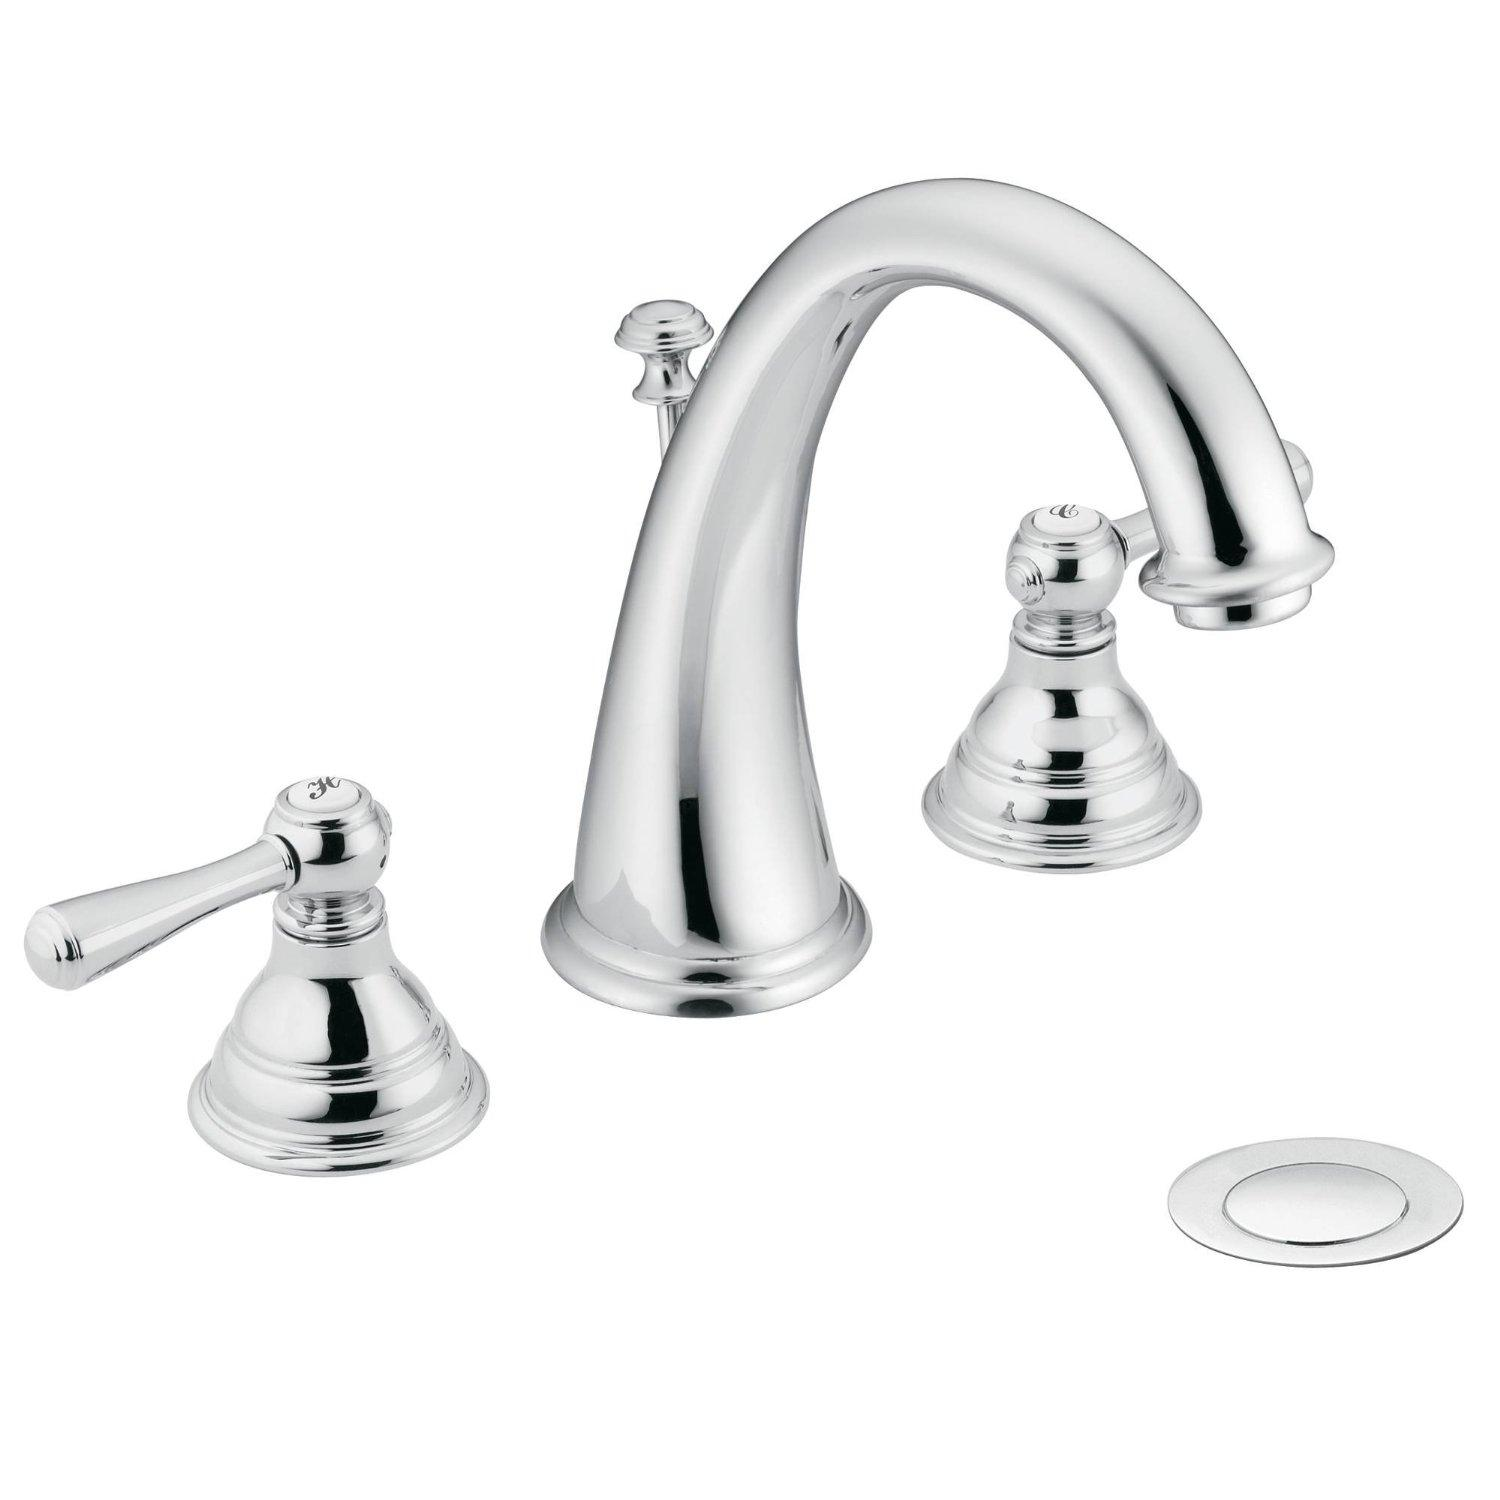 bathtub and faucets set single roman faucet tub sink vanity handle bath bathroom brands chrome centerset